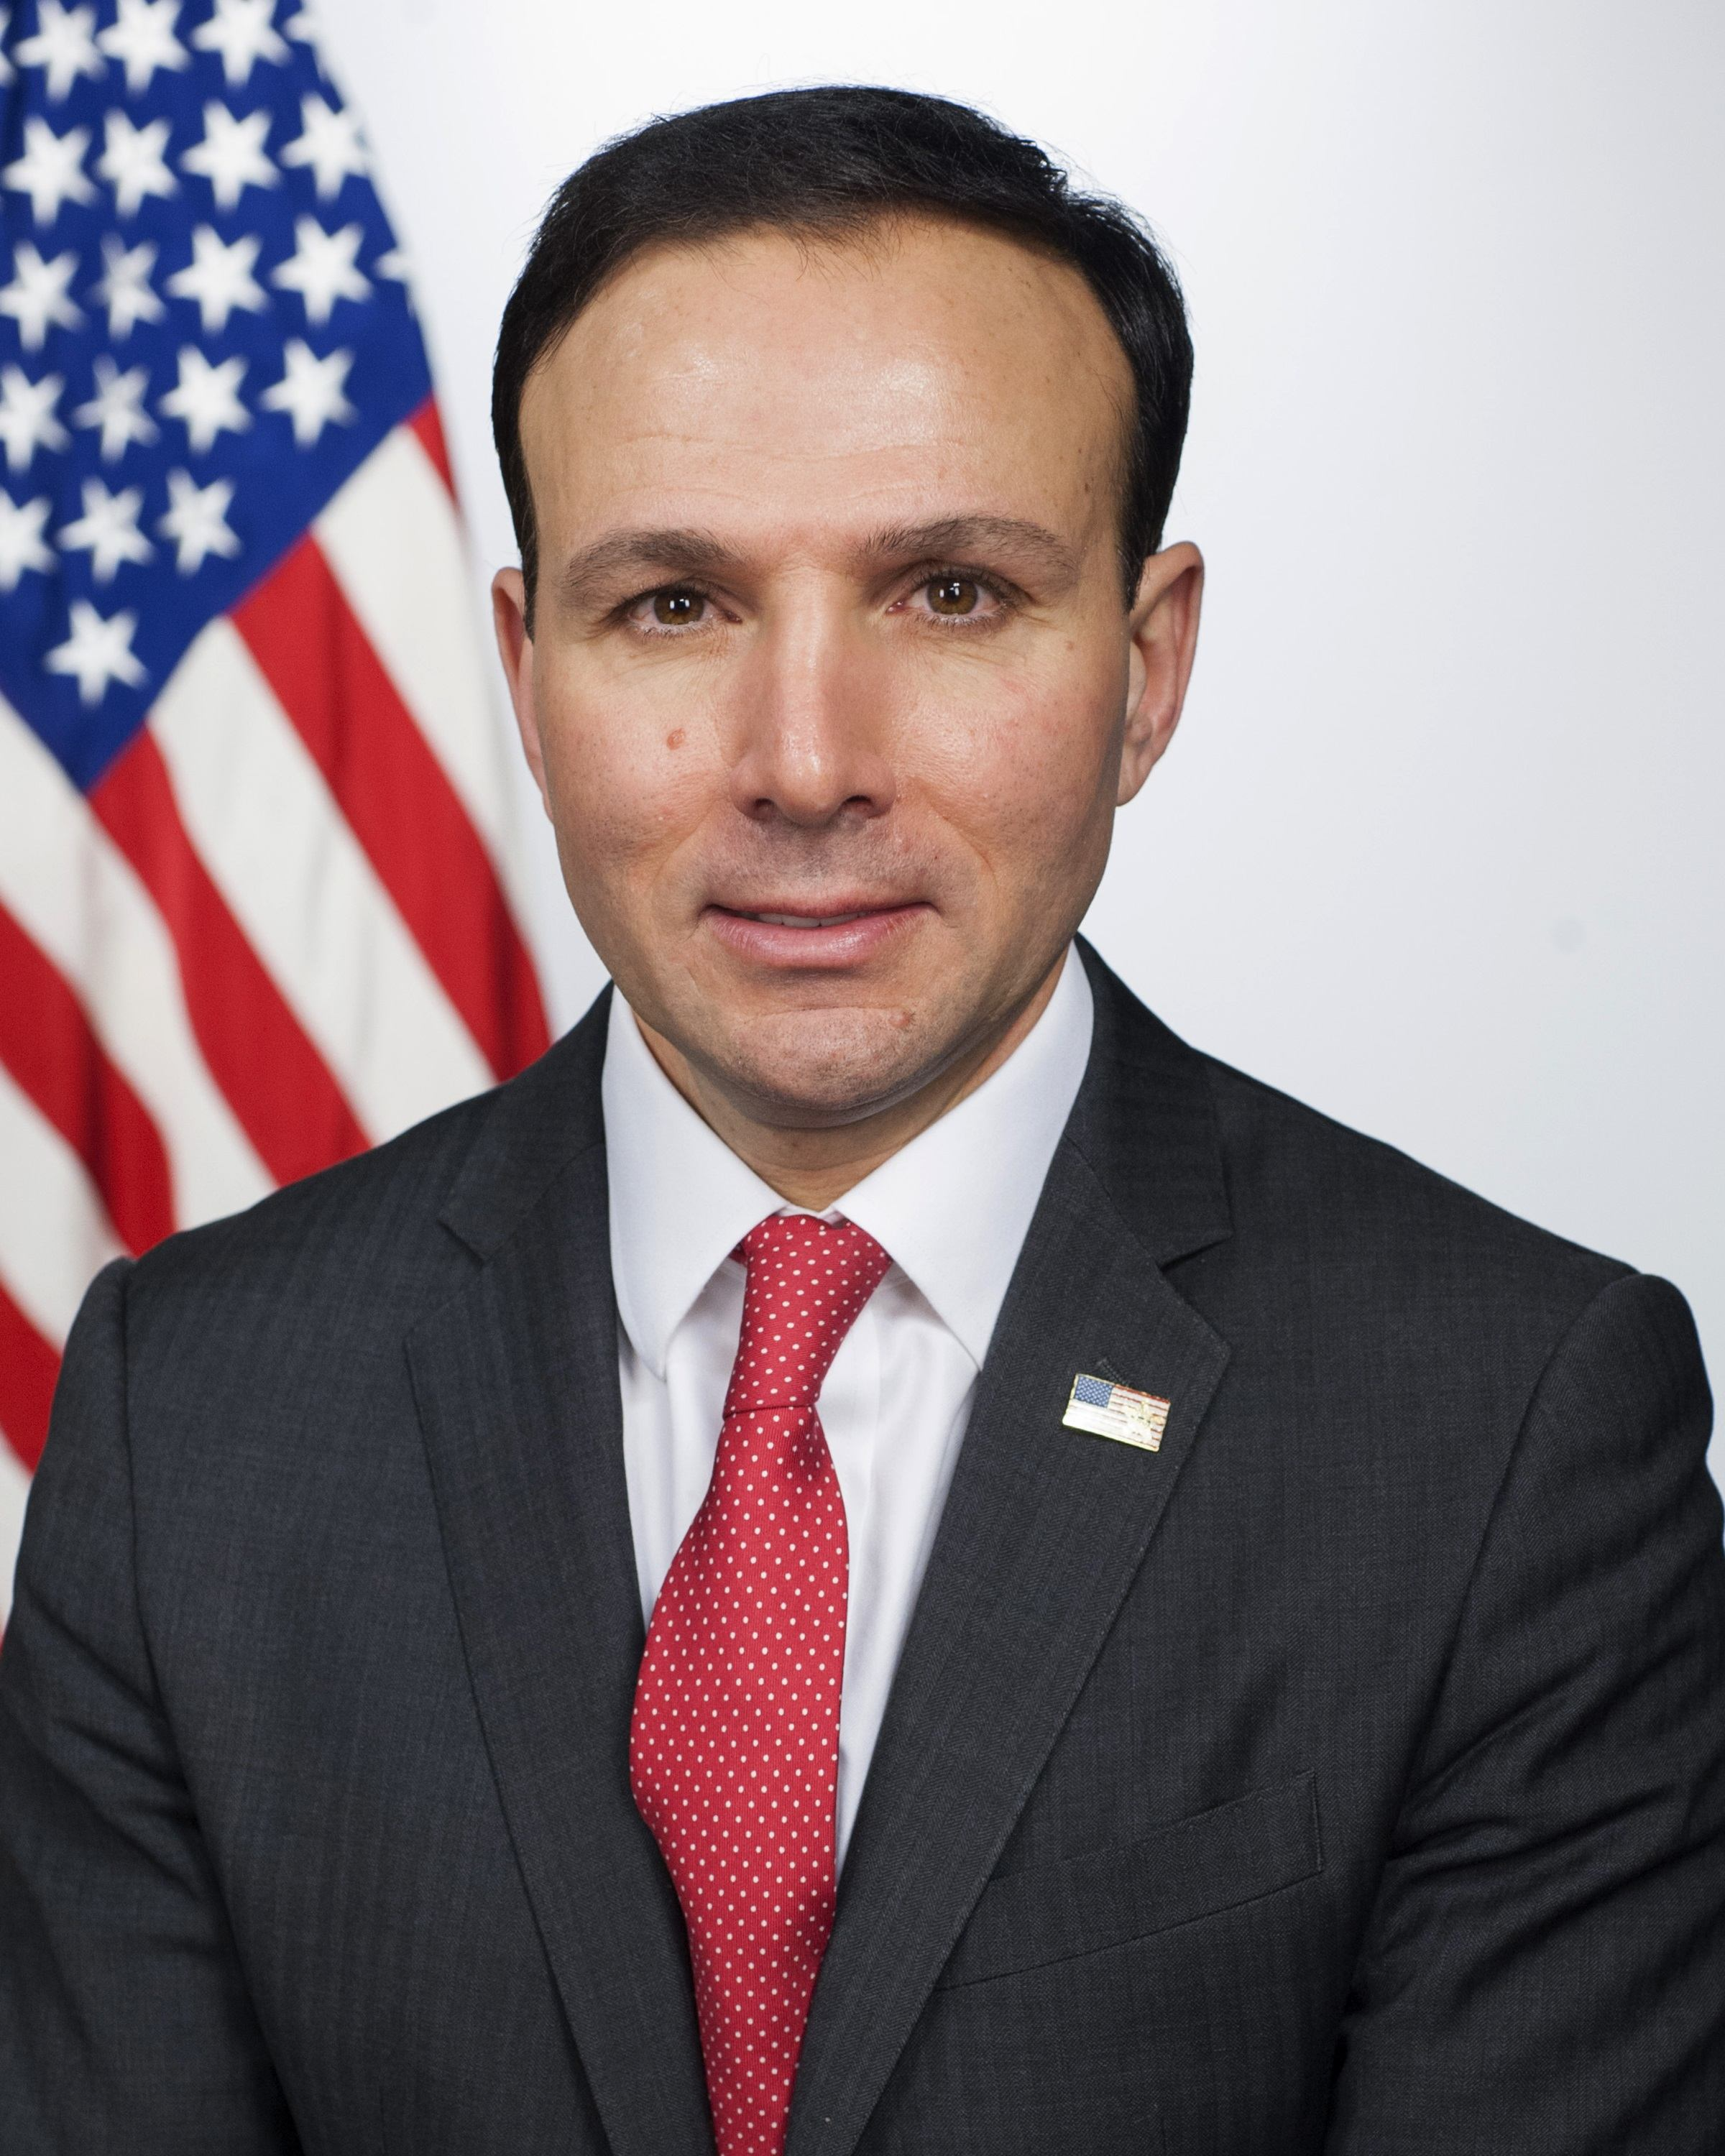 Official Portrait of George Sifakis